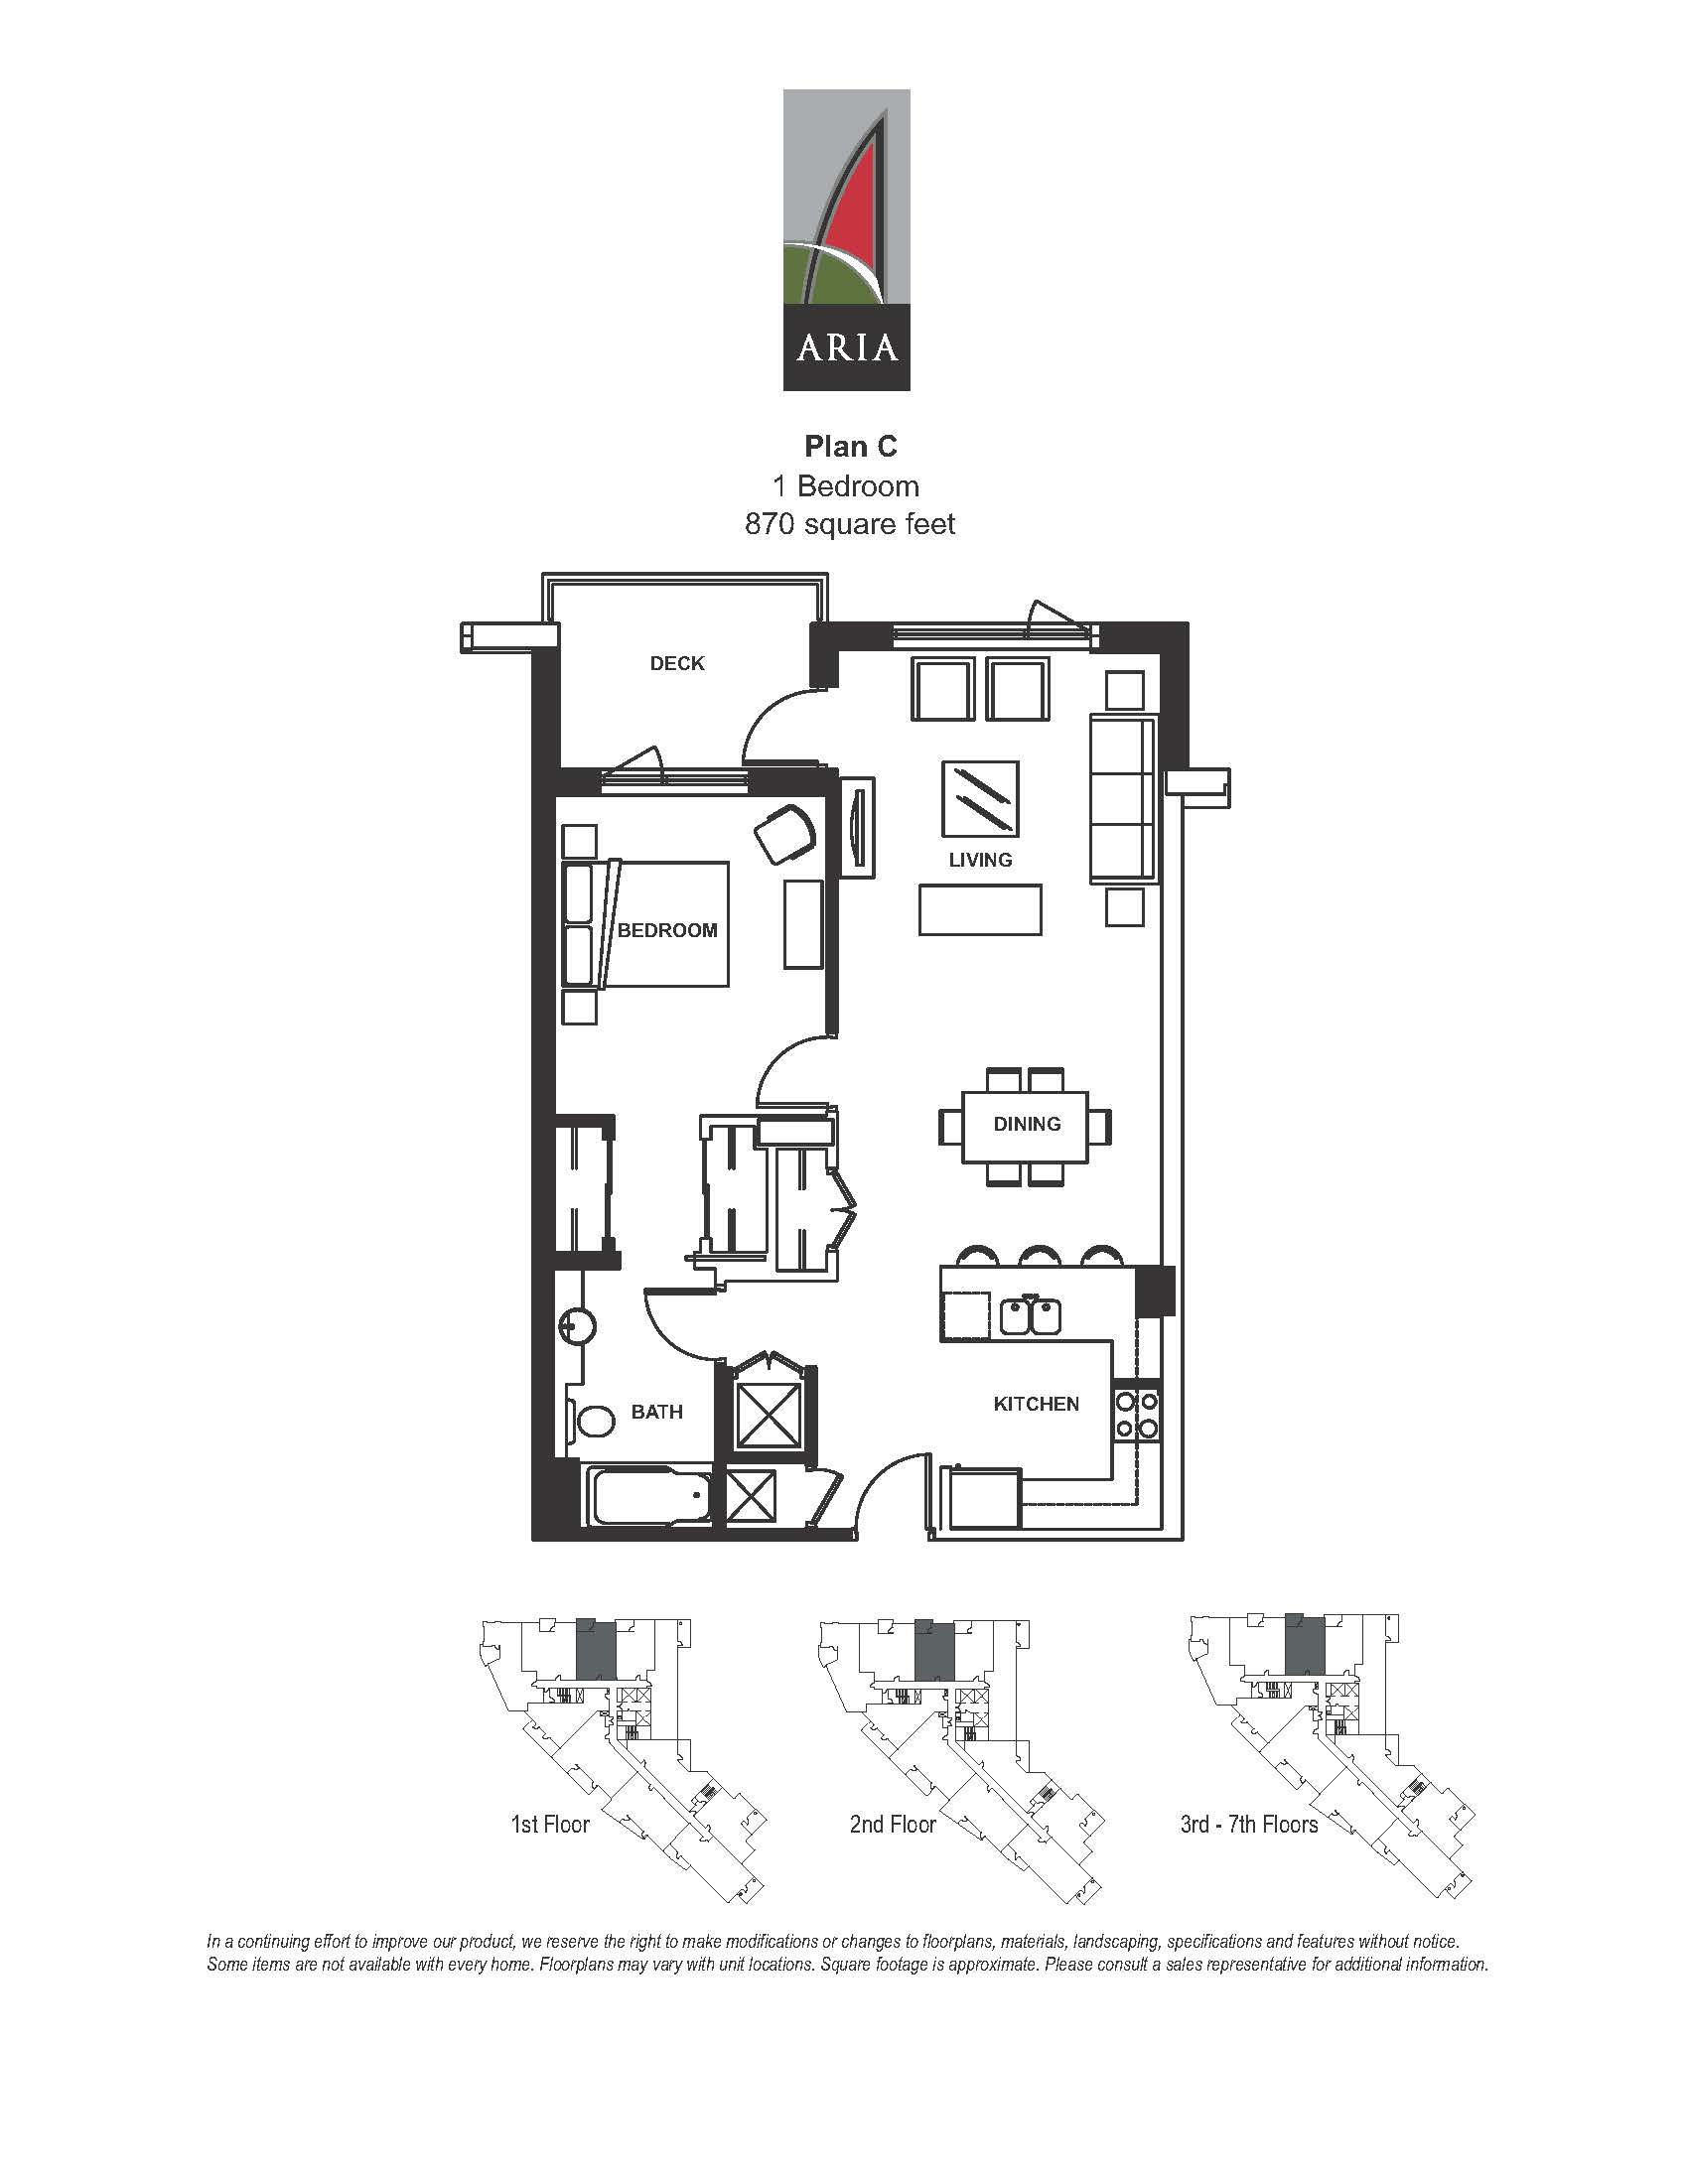 Aria 1 Bedroom – Plan C